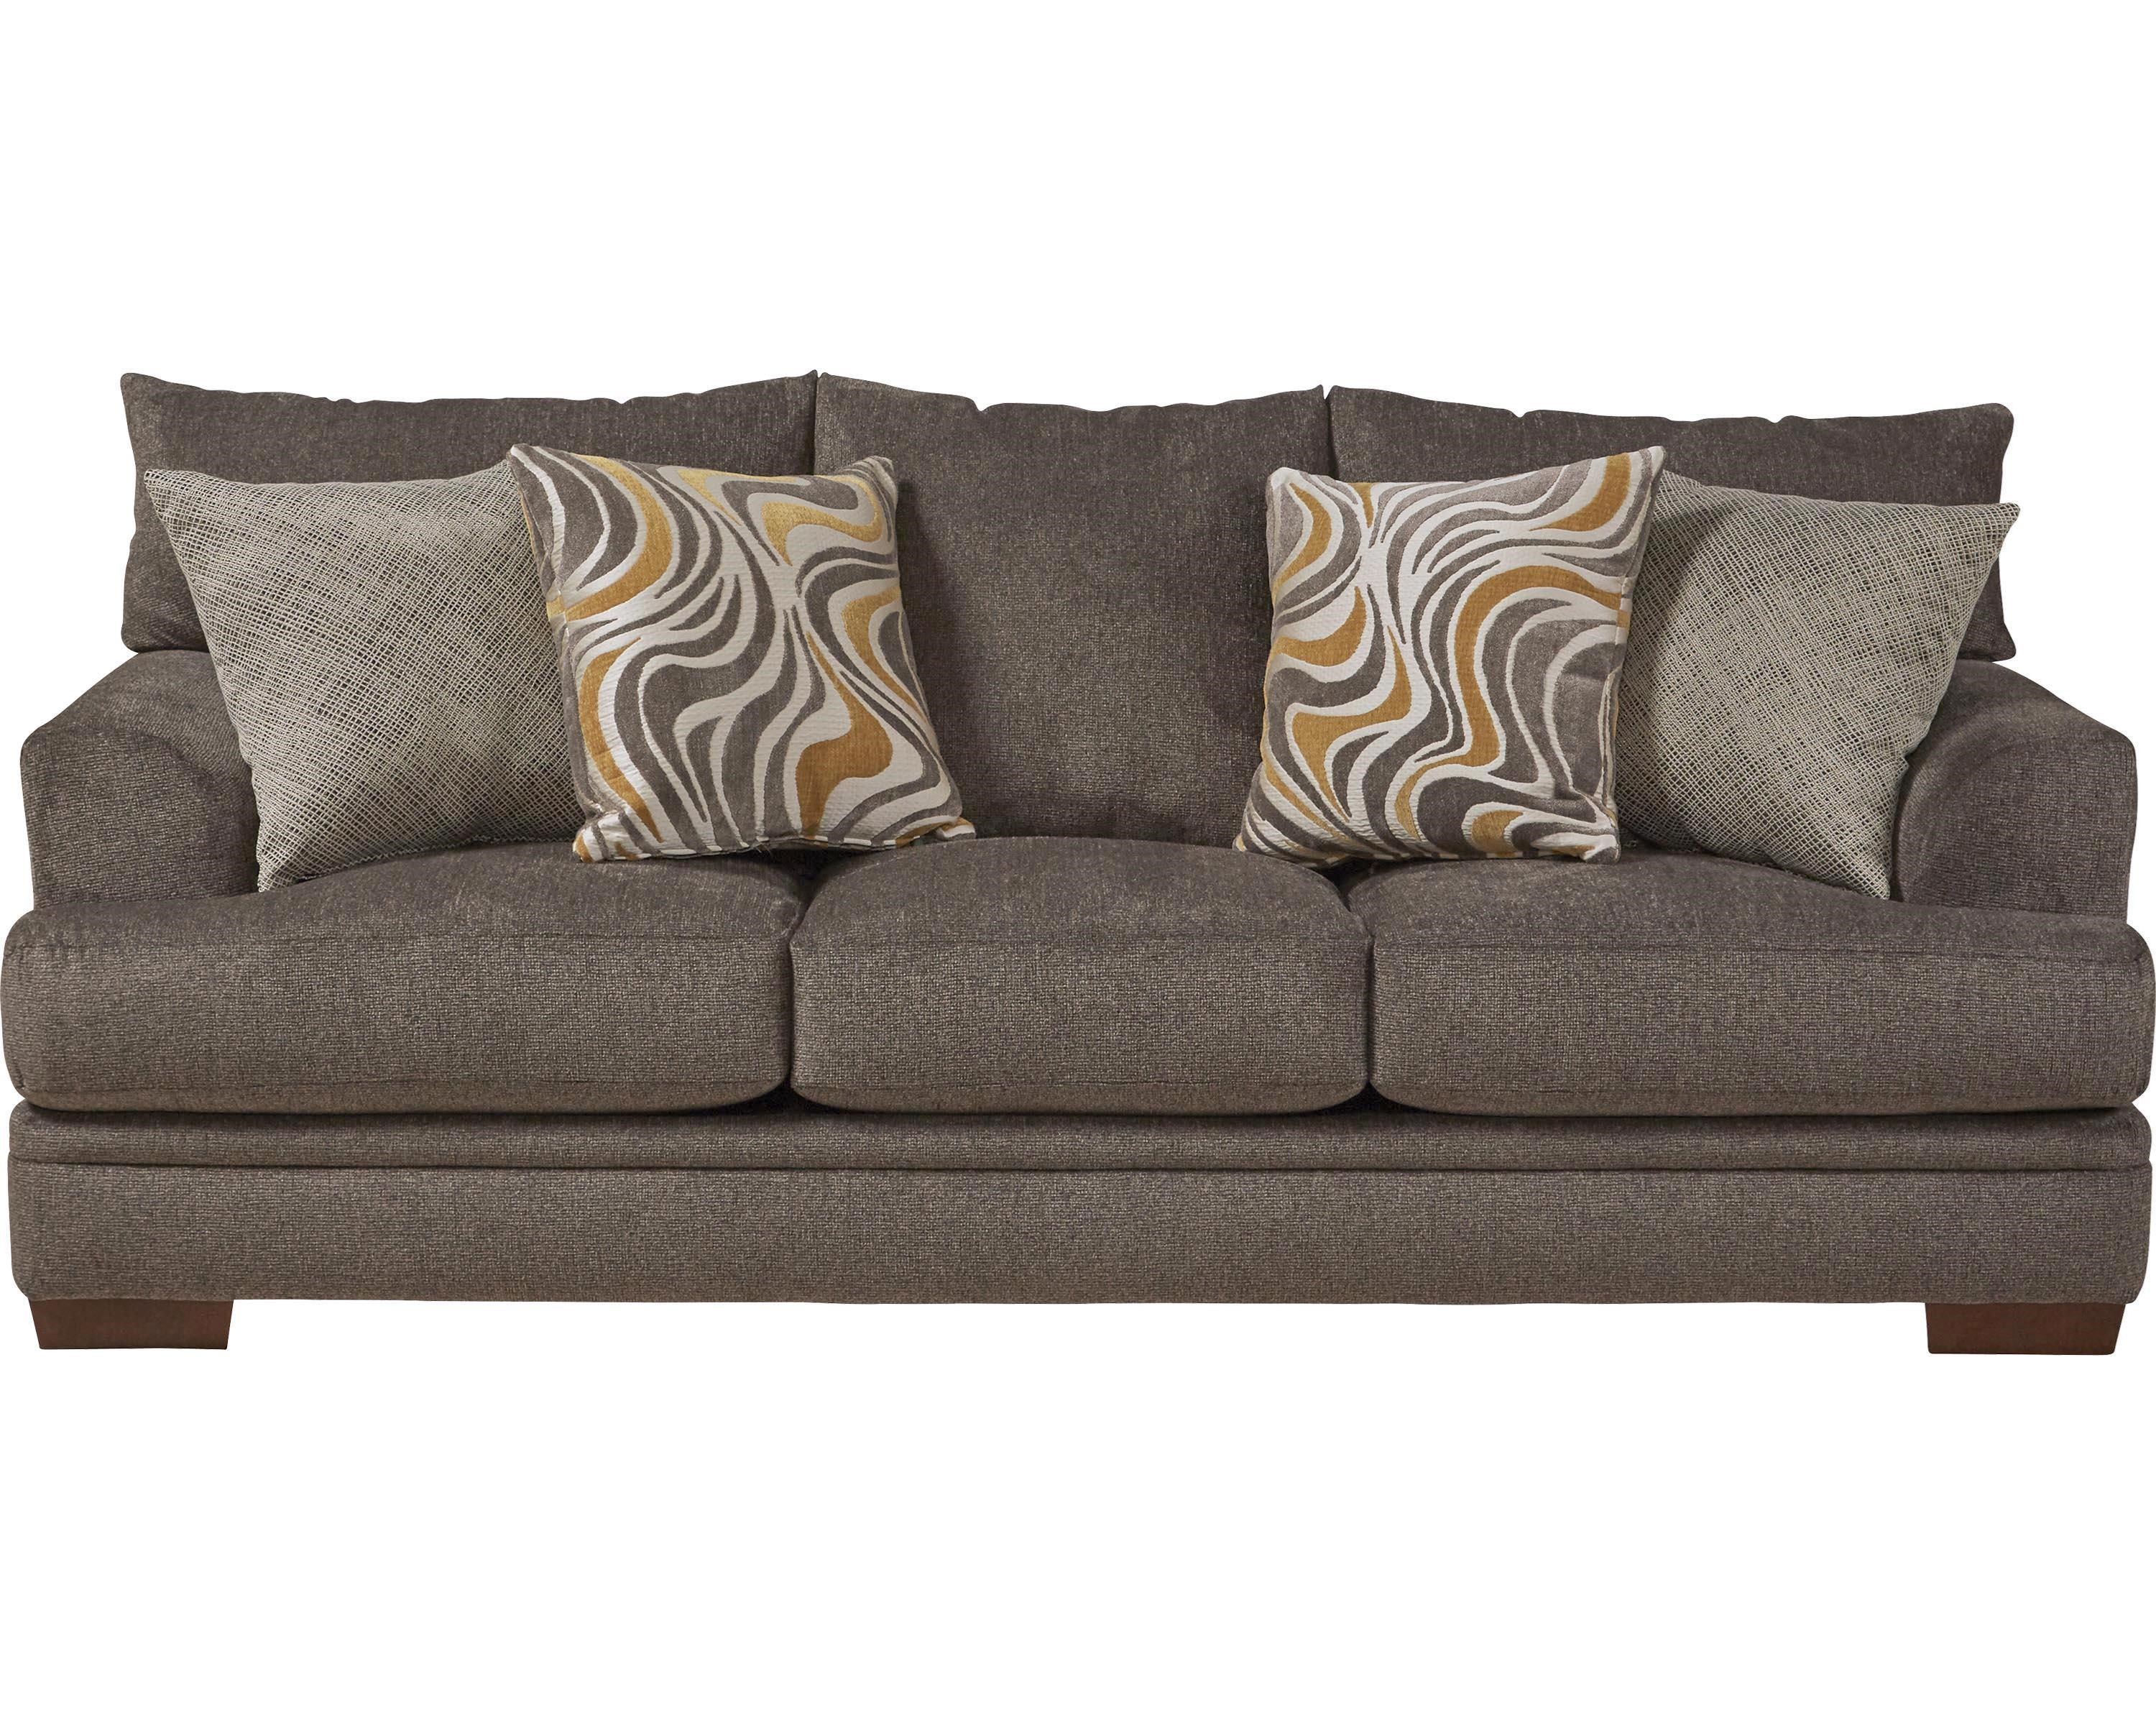 Jackson Furniture Crompton Pewter Sofa Great American Home Store